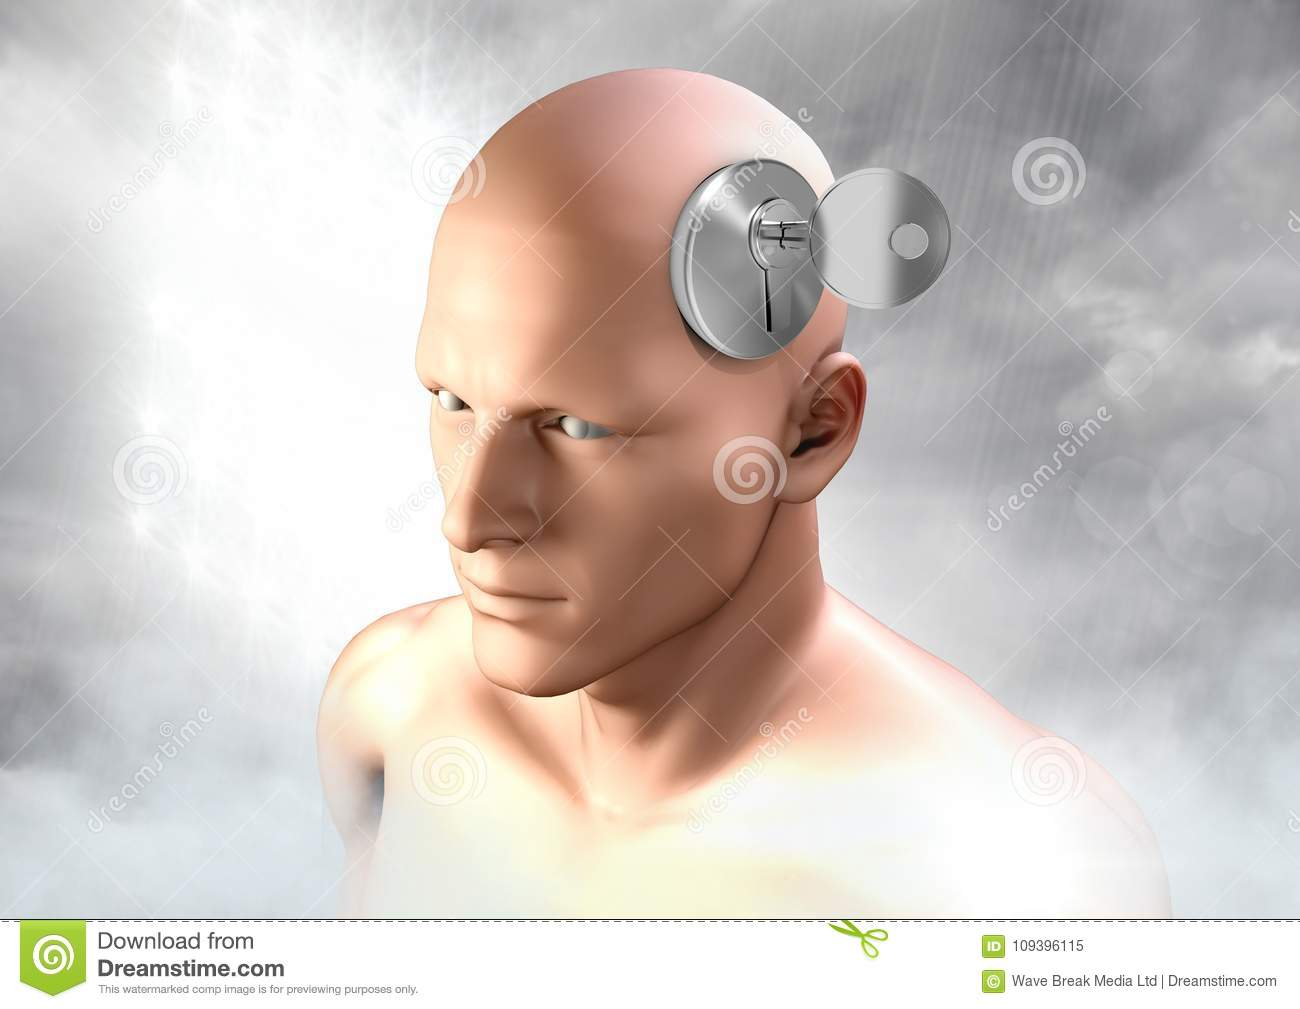 Key Unlocking The Surreal Imagination Of 3D Mans Head Stock Image